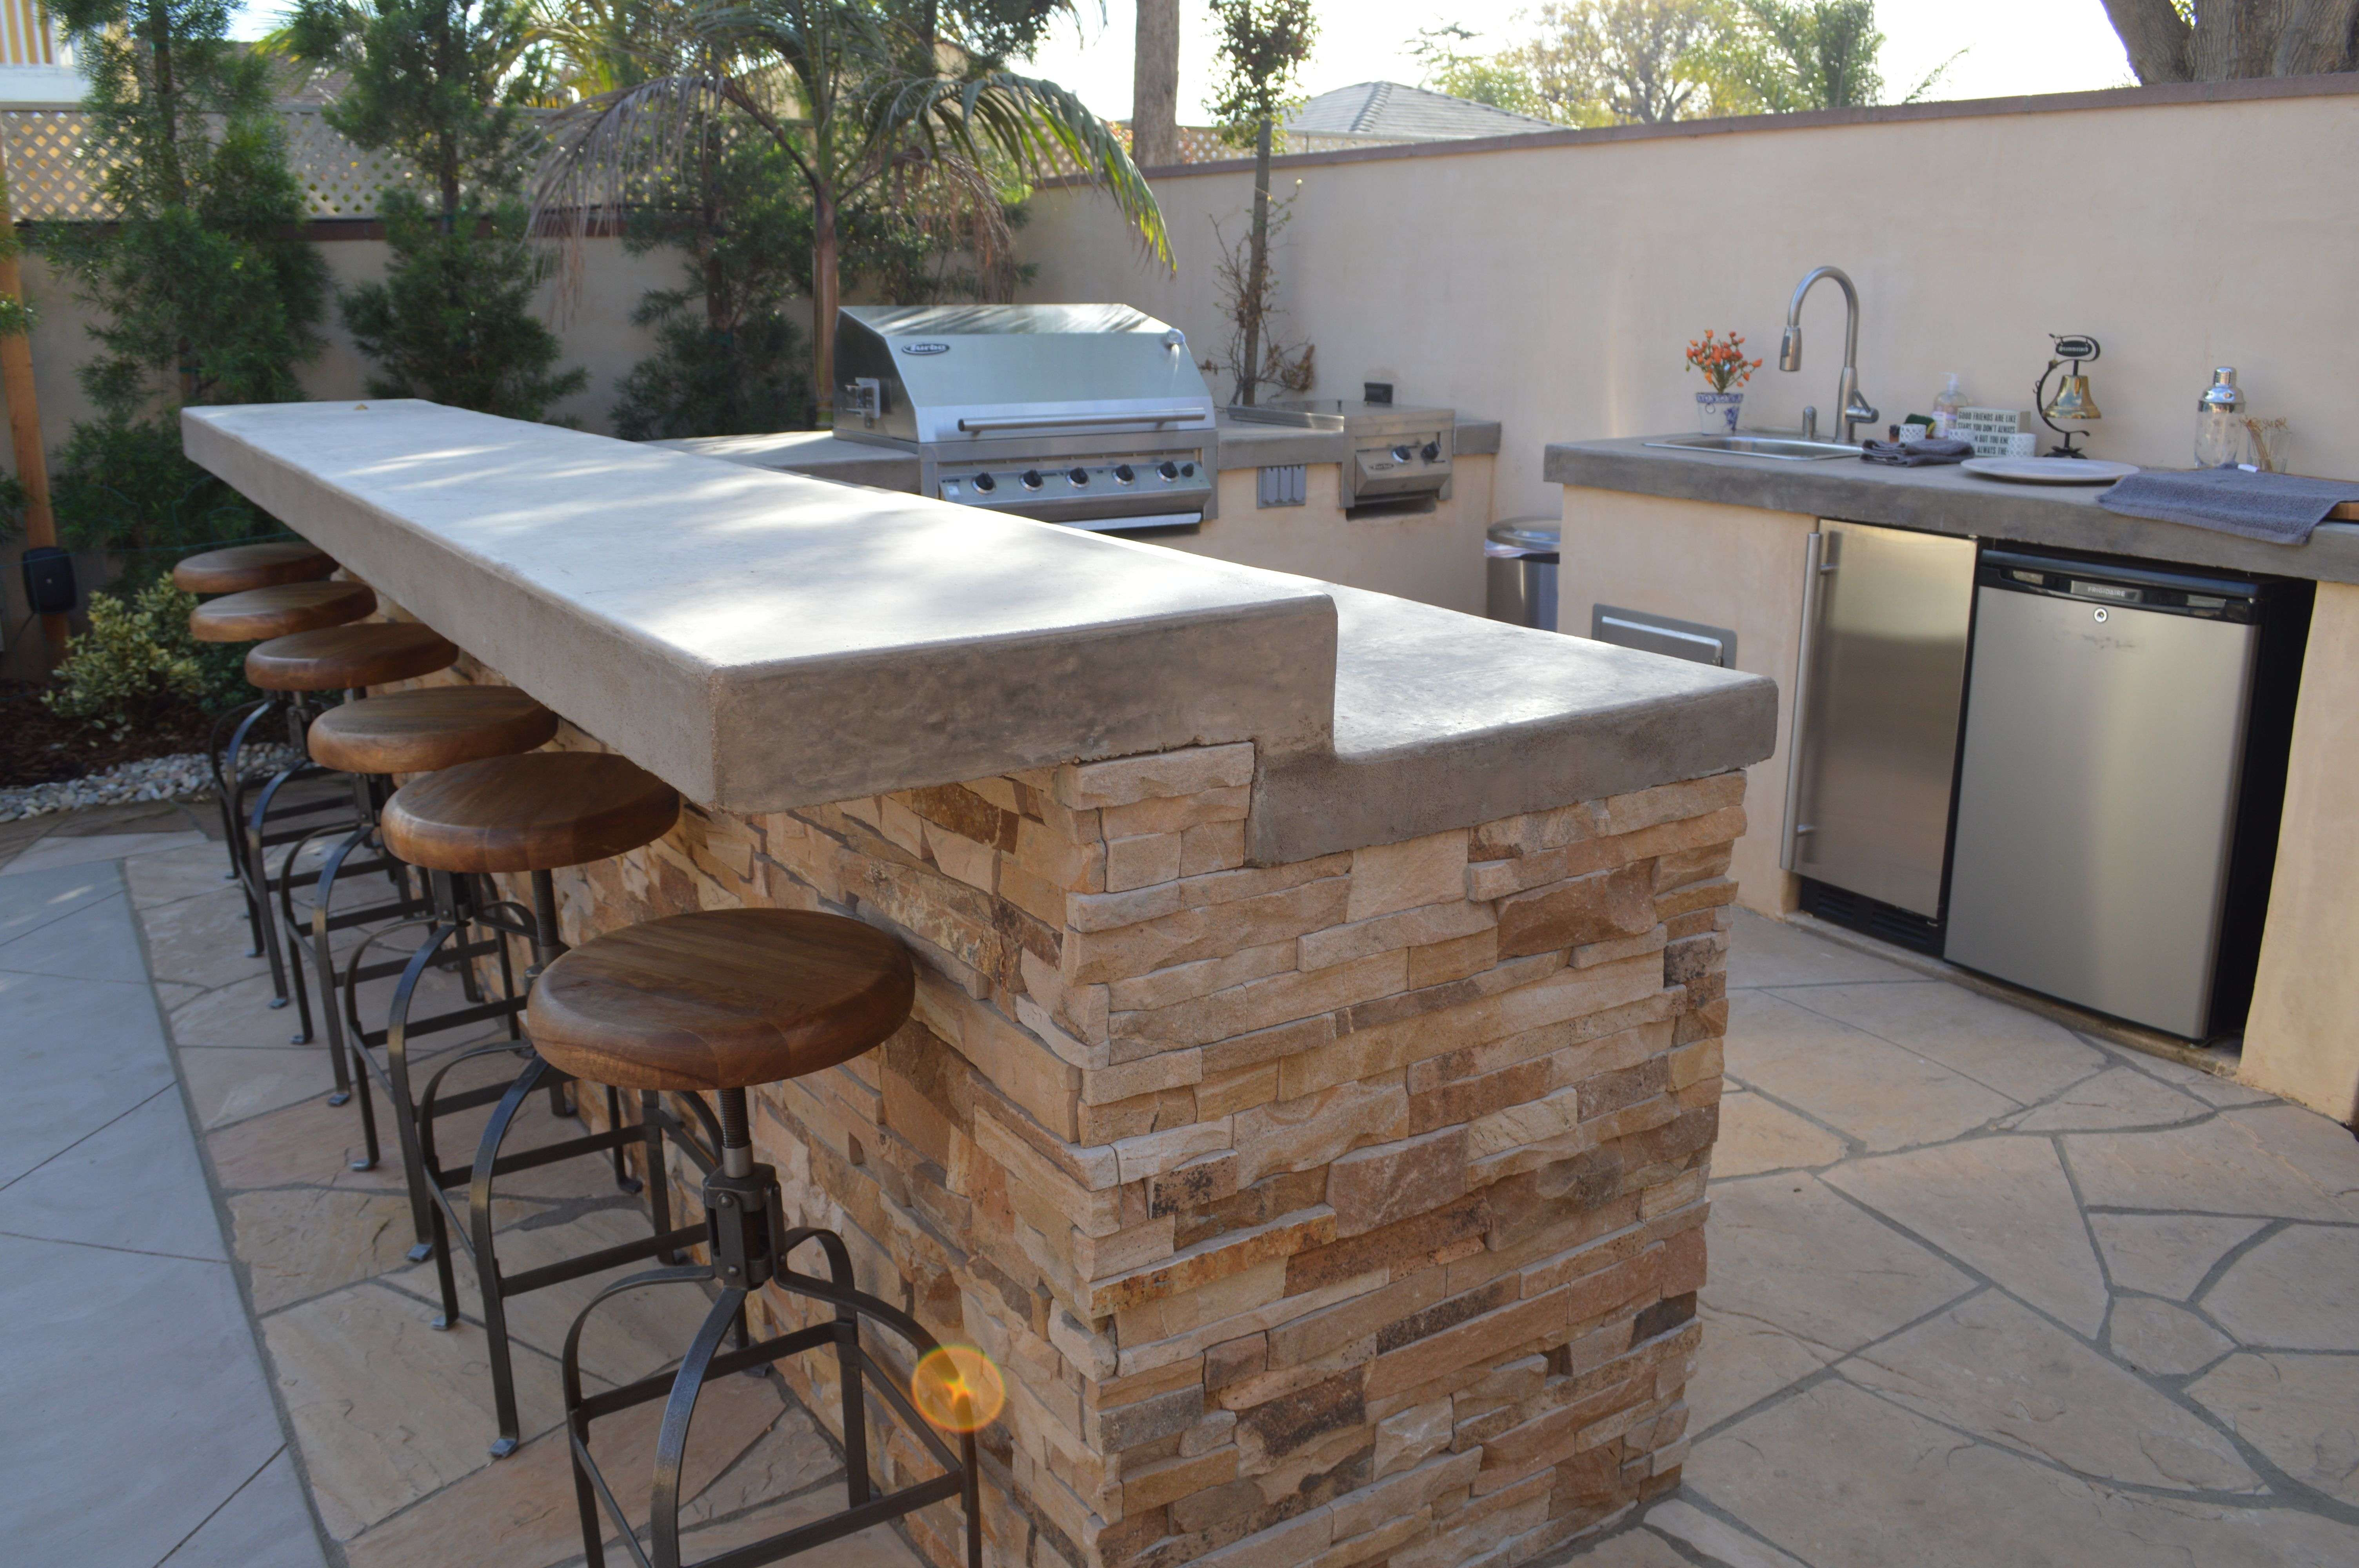 A Large Bbq Counter Combo For Entertaining Large Groups Outdoor Kitchen Decor Outdoor Kitchen Backyard Kitchen